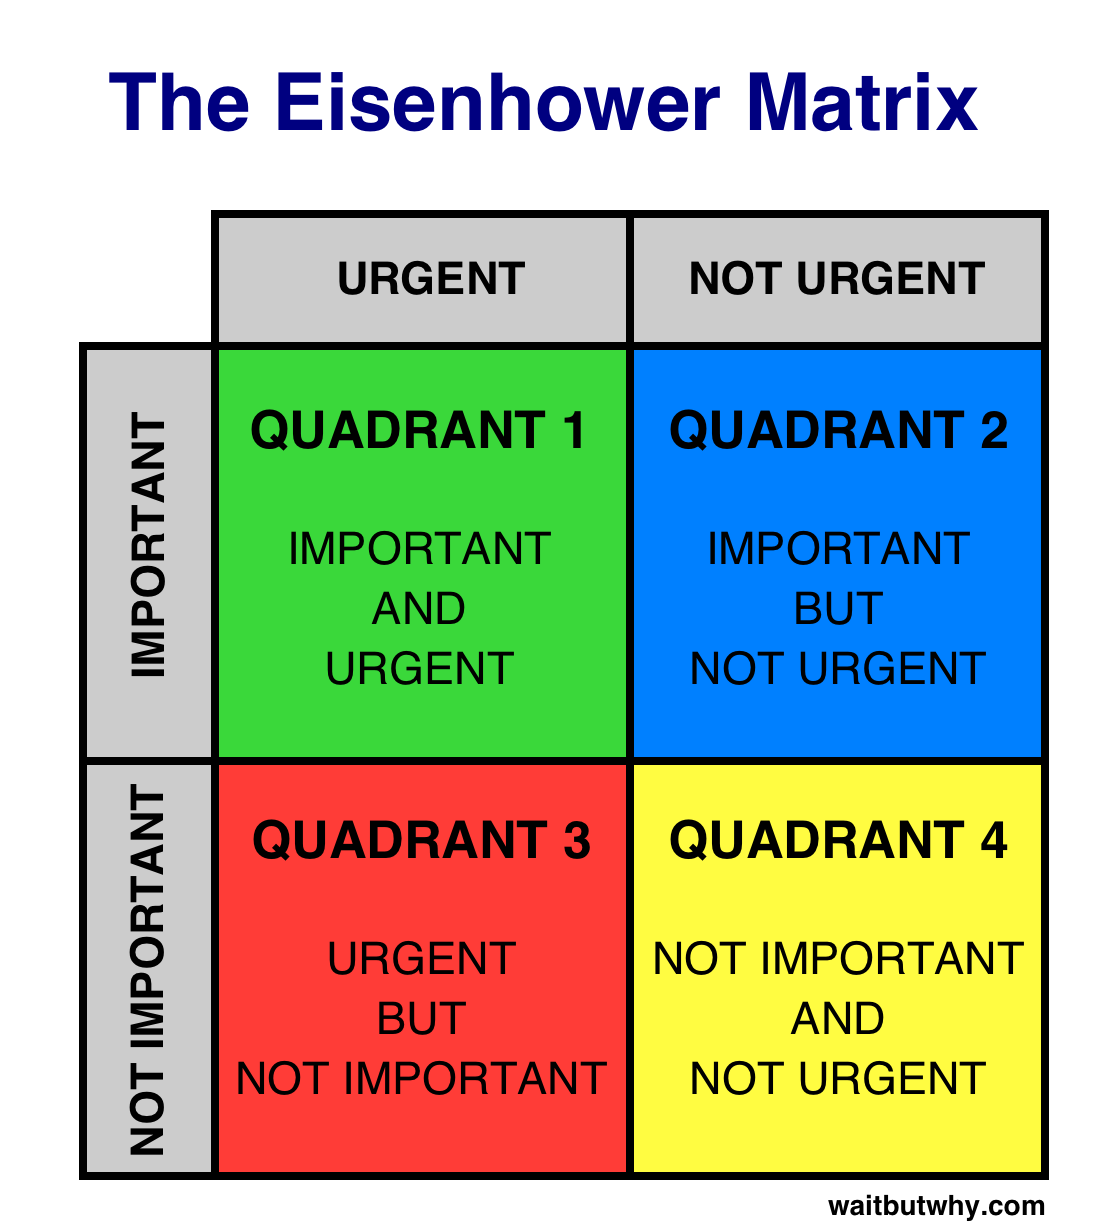 Eisenhower's priority matrix